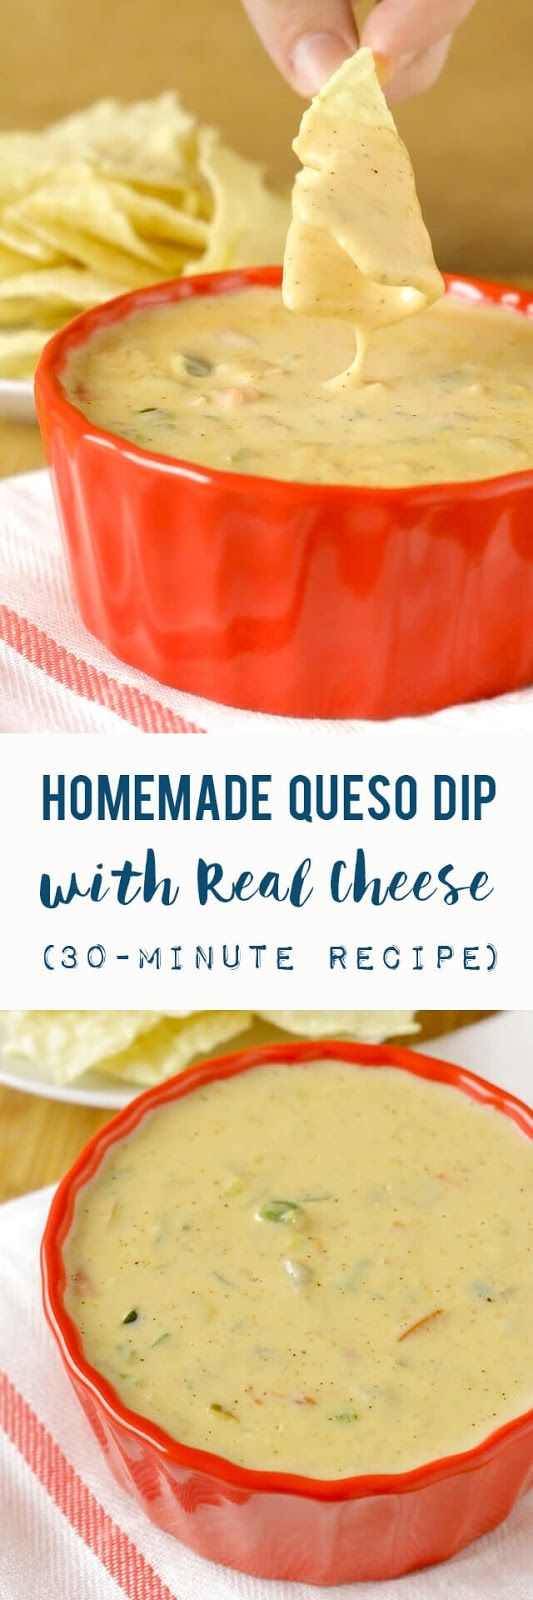 An easy homemade queso dip recipe made with three types of real cheese, onion, garlic, peppers, and spices in 30 minutes or less. Perfect for game day parties, holiday gatherings, or a relaxing night in! | Real Food Recipe | Appetizer | Cinco de Mayo | Tex Mex |  #dip #queso #GameDayEats #superbowl #easyrecipe